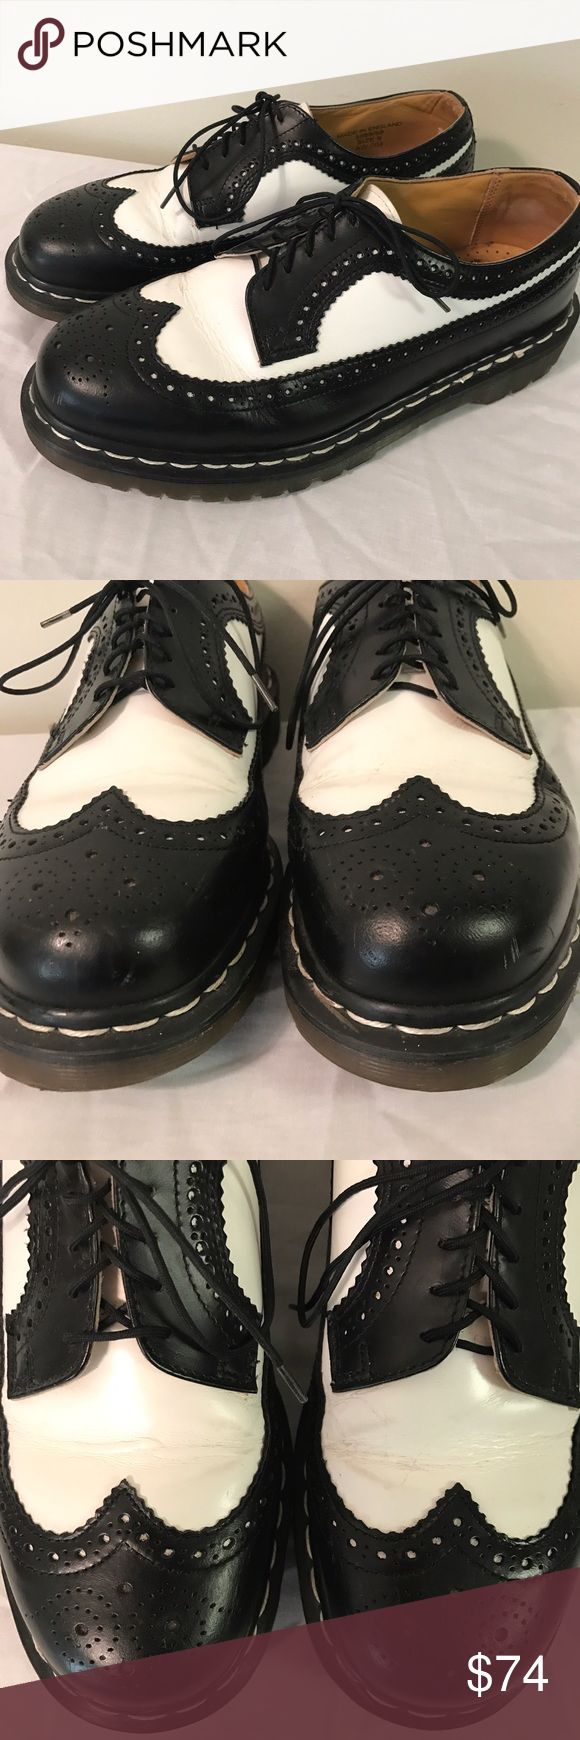 Vtg DOC MARTENS WingTip Rockabilly Spectator Shoes UK size 9/ US size 10 Men's Made in England Cracking in white part of leather on top Bottoms are in perfect condition! Dr. Martens Shoes Oxfords & Derbys